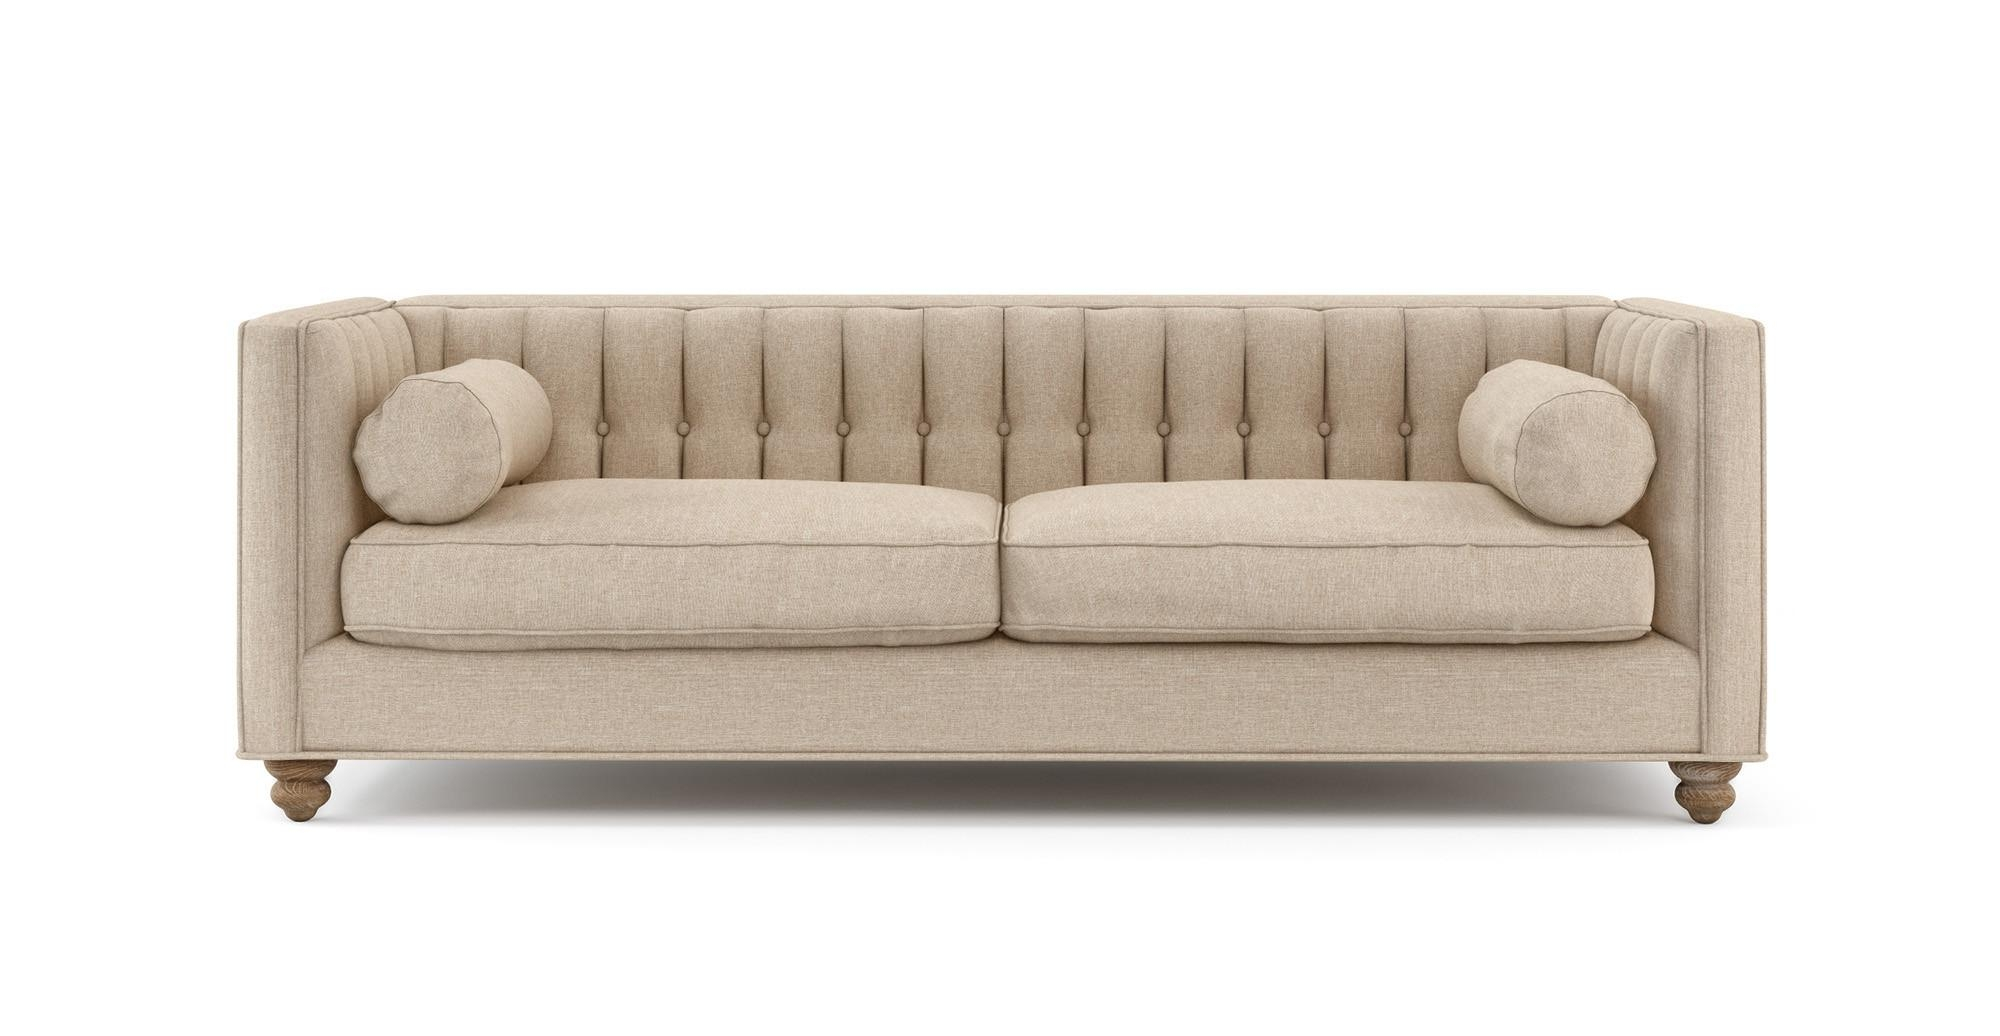 Three Seater Sofa 15 With Three Seater Sofa | Jinanhongyu Within 3 Seater Sofas For Sale (View 5 of 21)